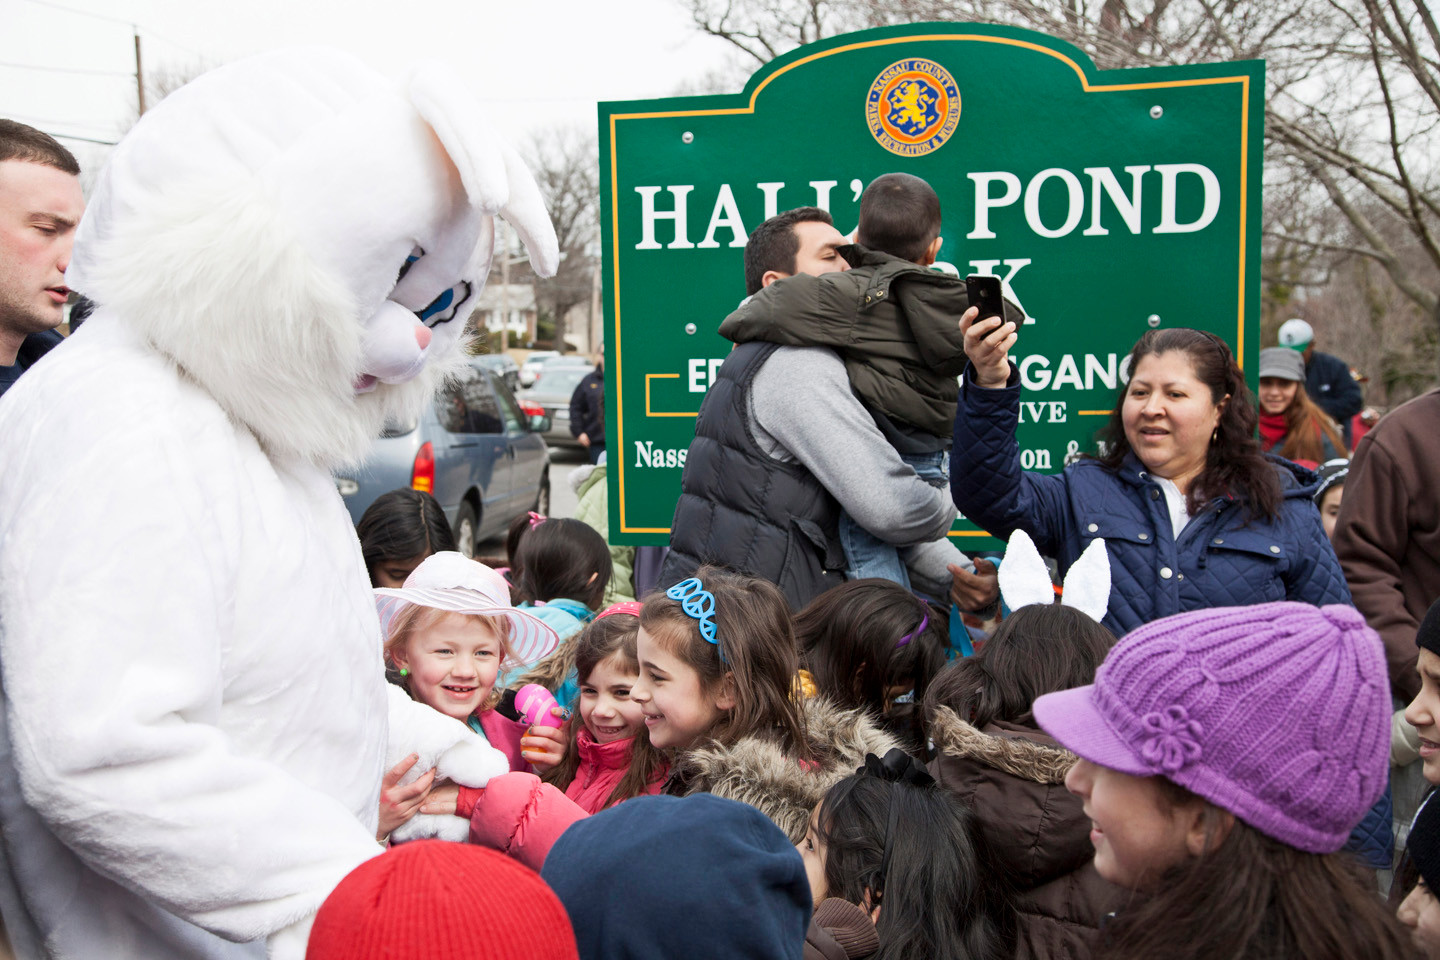 Hall's Pond Park was the scene of lots of egg hunting on March 23, thanks to the Lions Club, as kids and adults alike searched the park.